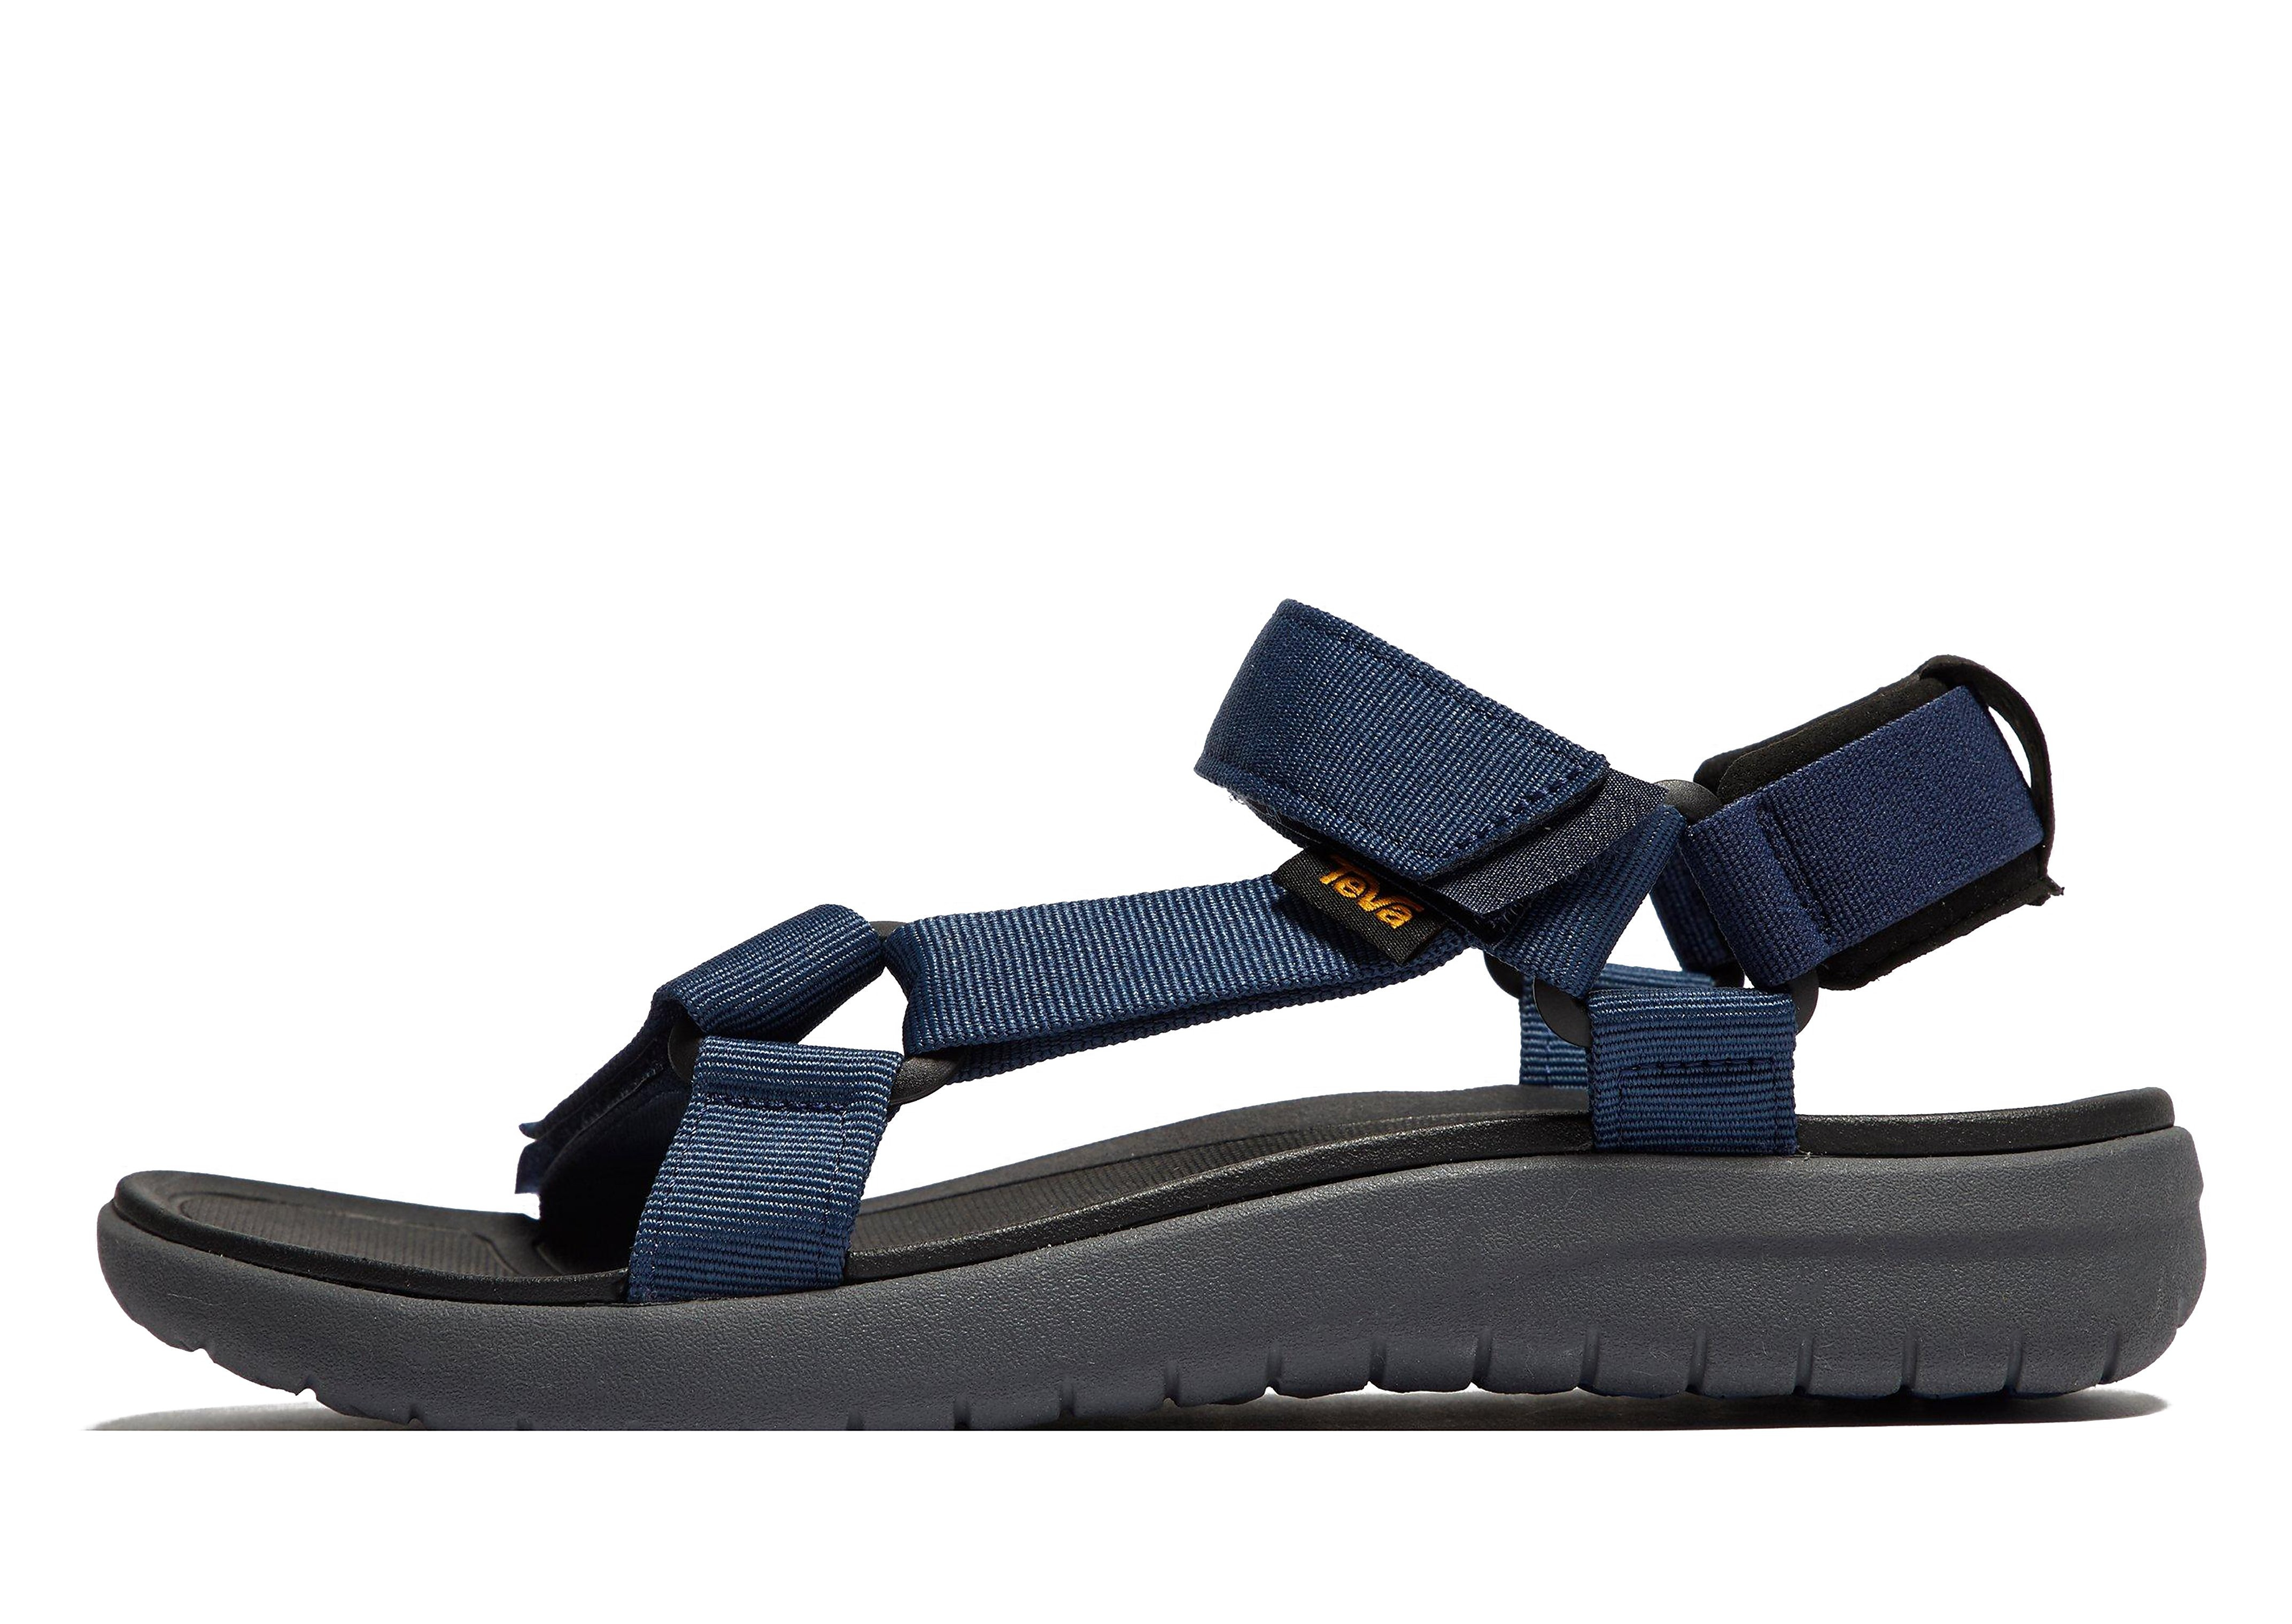 Teva Sanborn Universal Men's Sandals